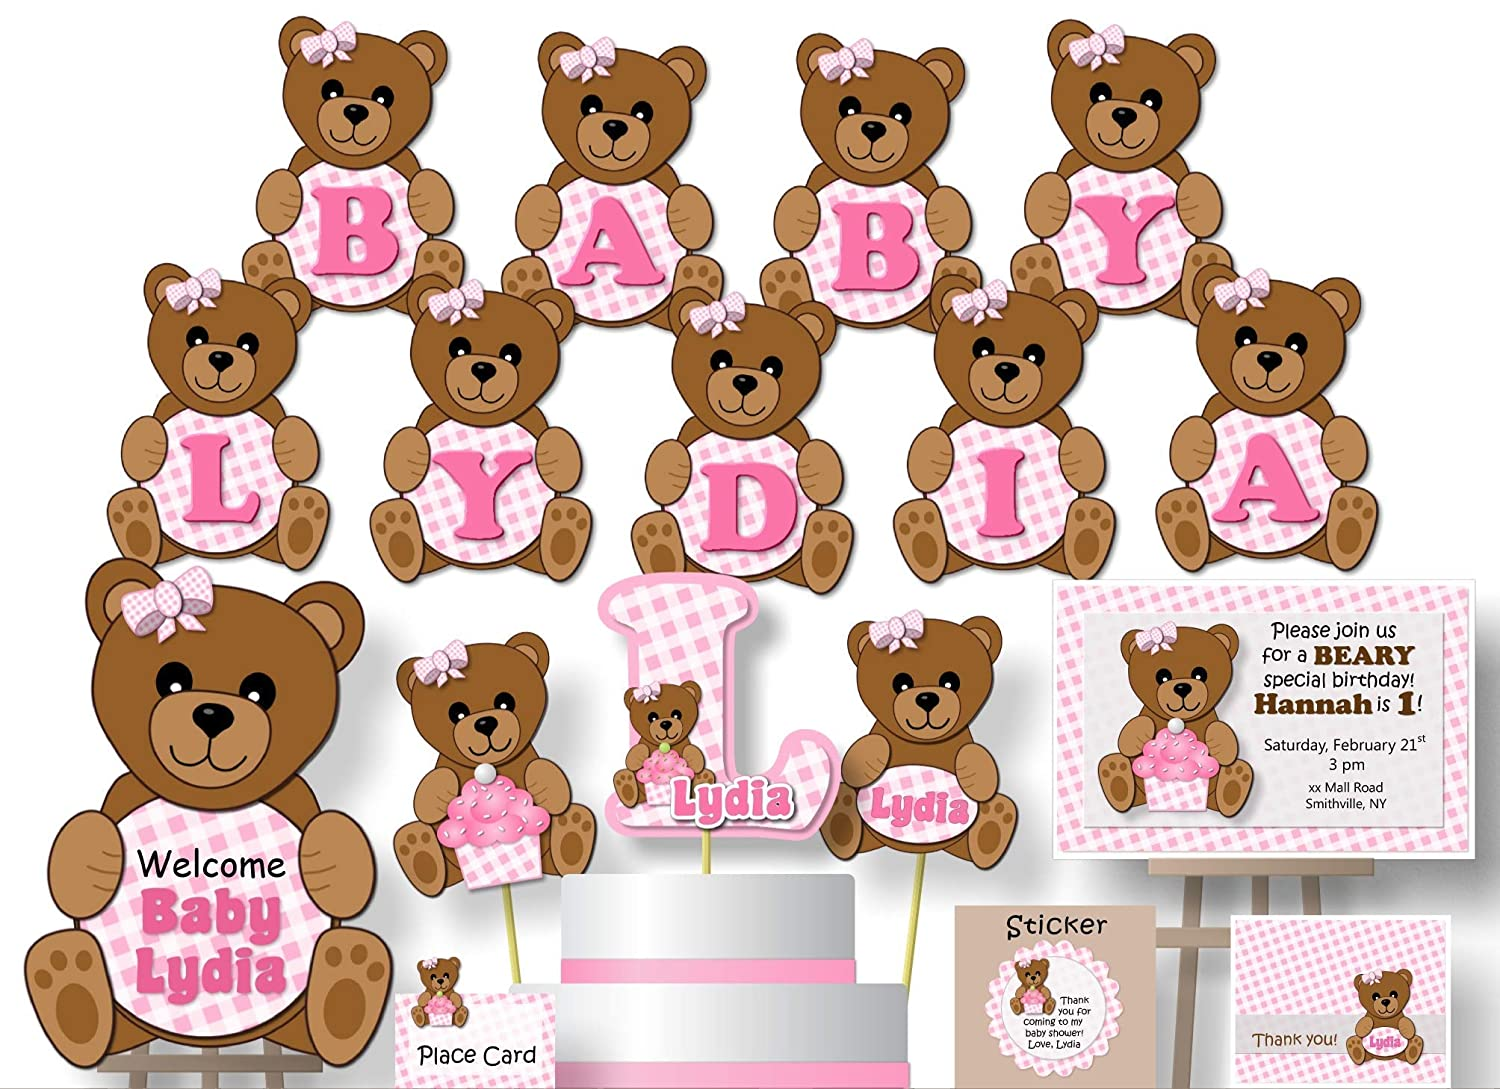 Set of 10 Item 1336A Personalized Teddy Bear Baby Shower Favors or Birthday Party Favors Custom Muslin Cotton Bags